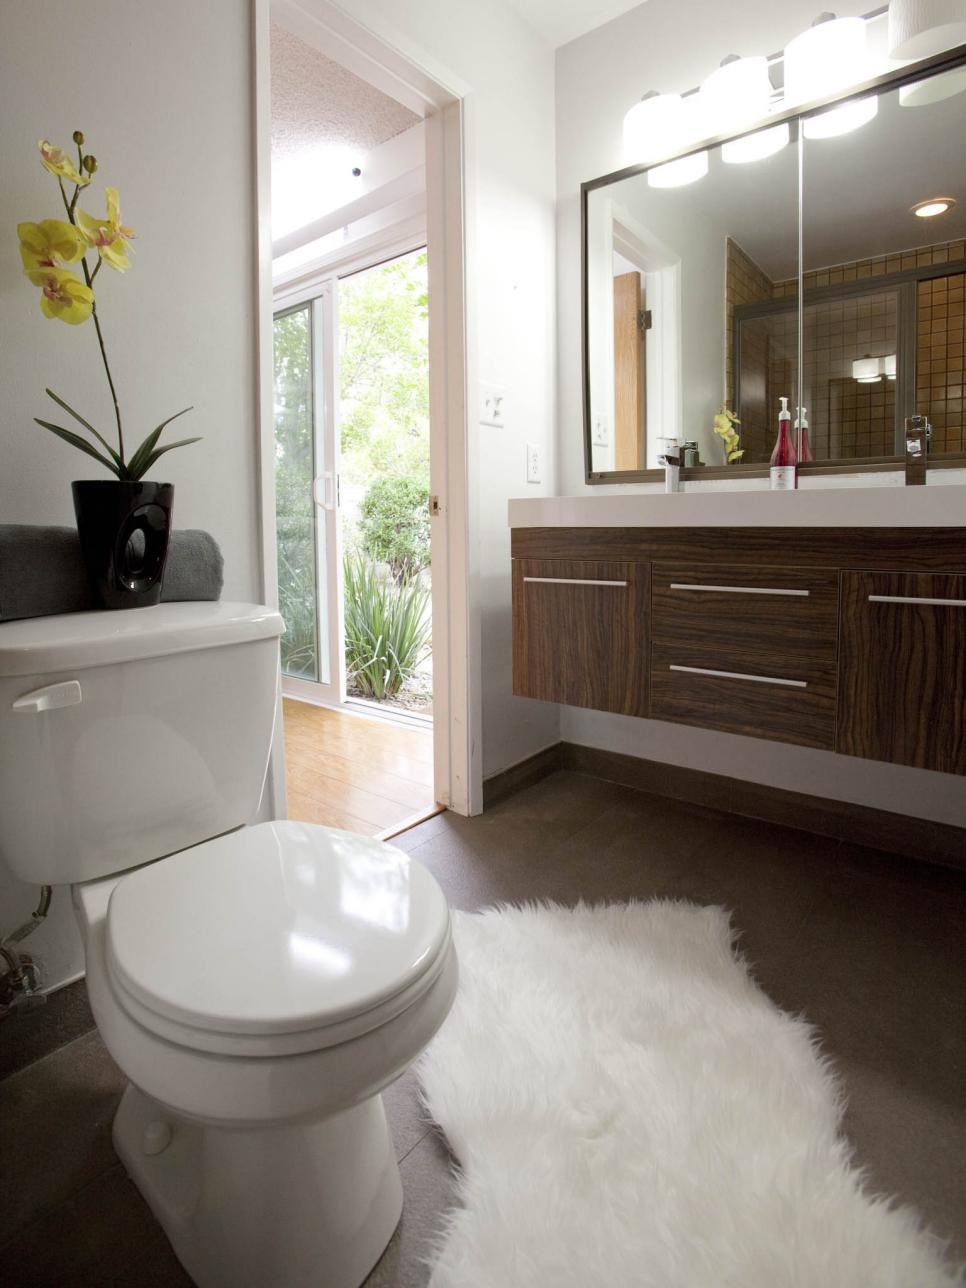 Hunky Concept Of Small Bathroom With Toilet also Wooden Cabinet and Mirror